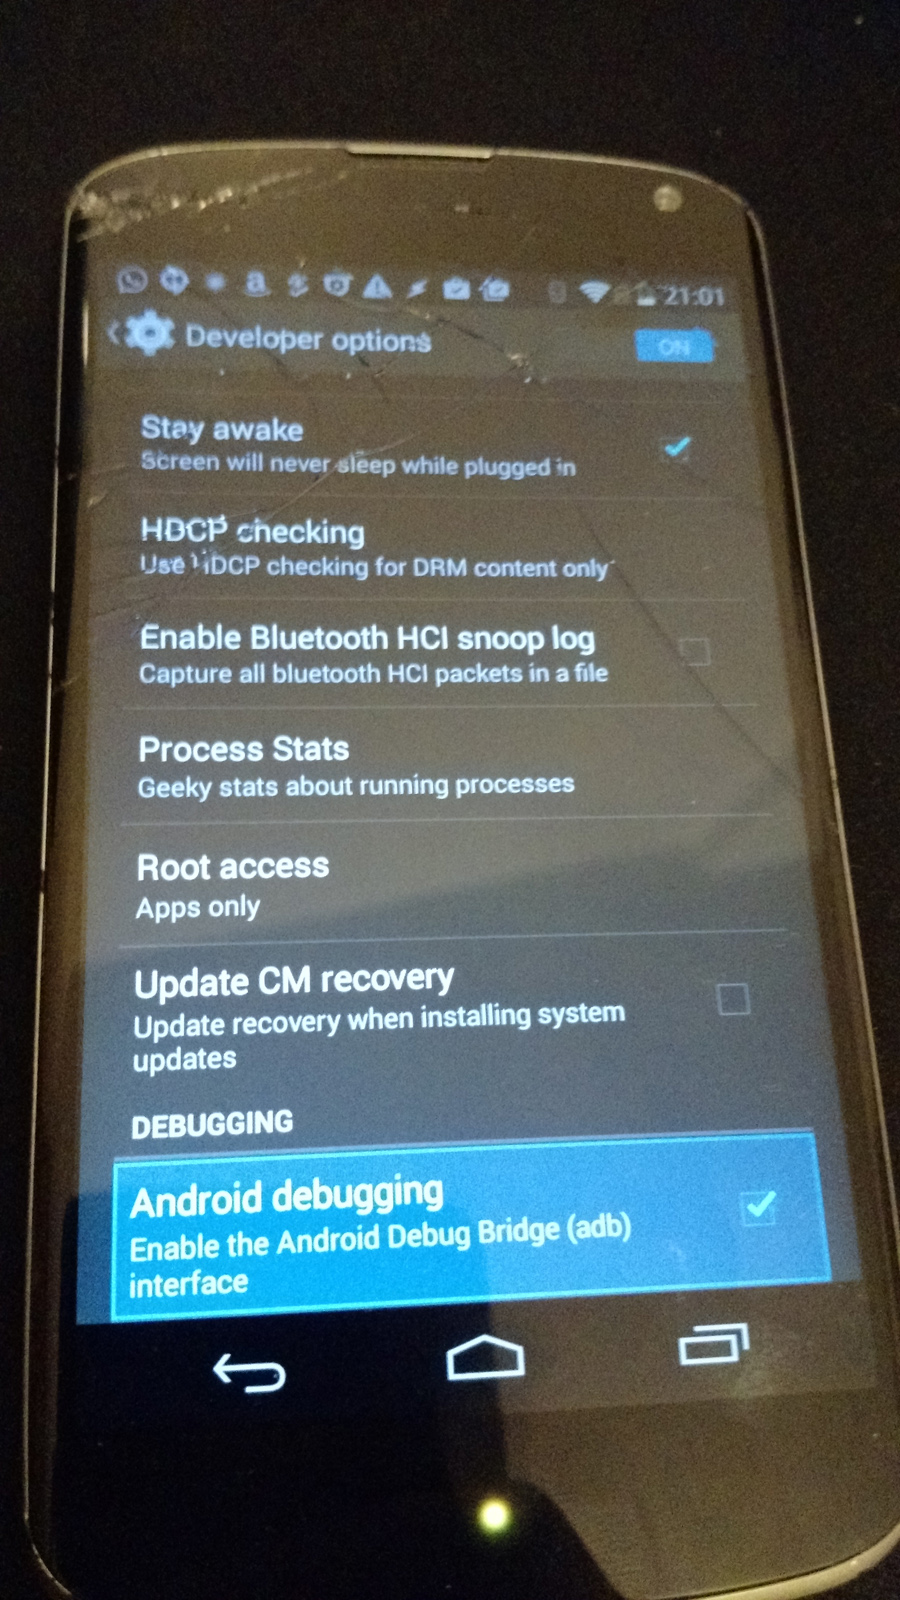 Picture of Sending Commands and Enabling ABD Android Debugging